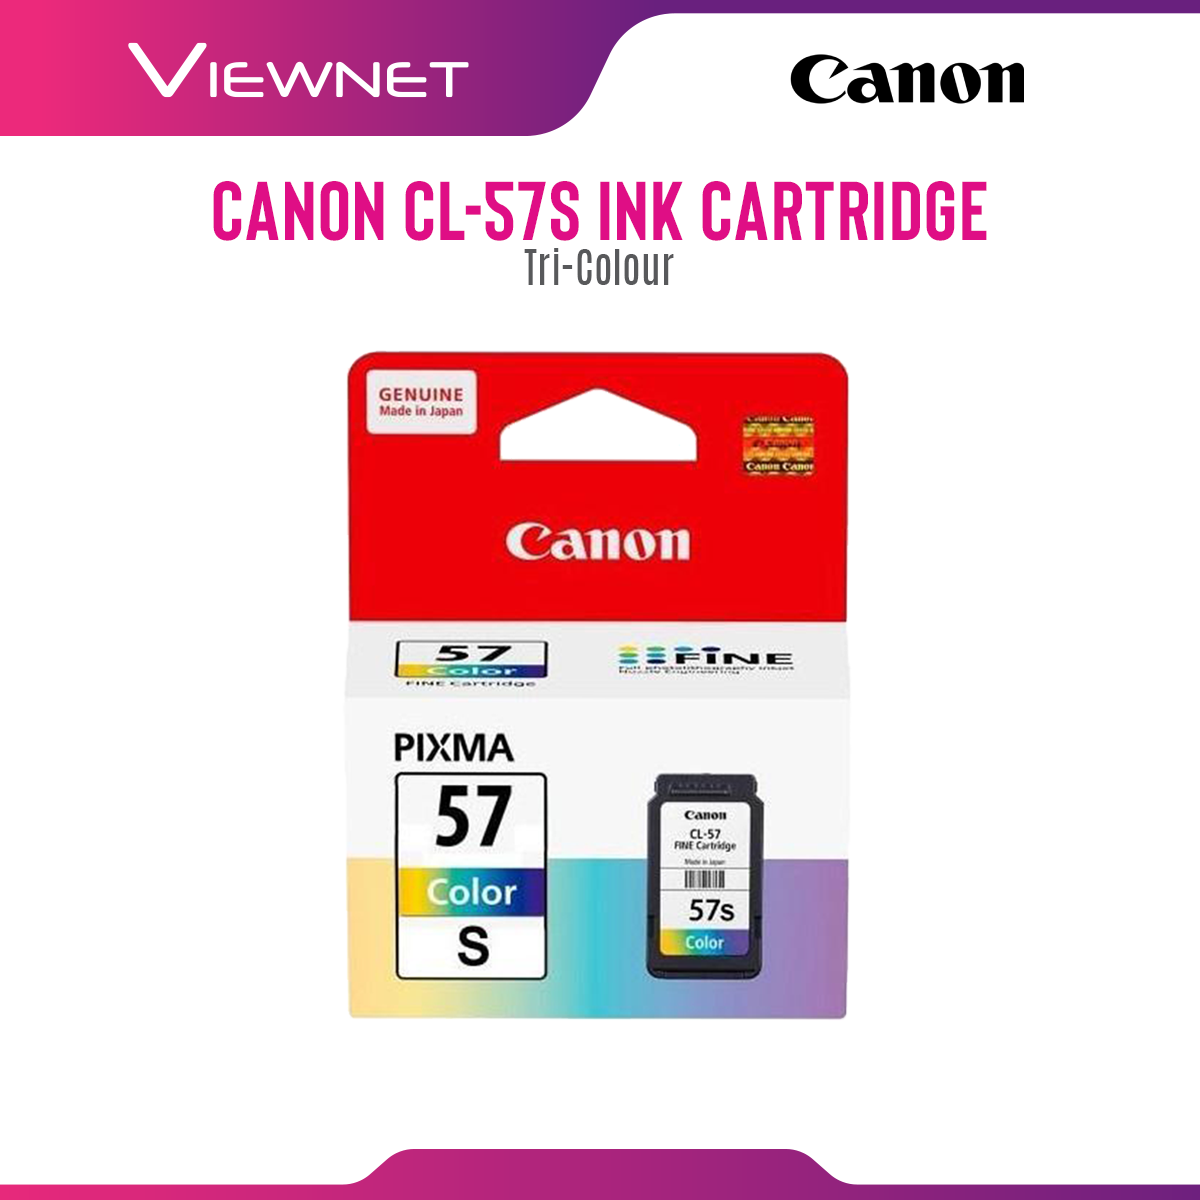 Canon CL-57S (Colour) Ink Cartridge